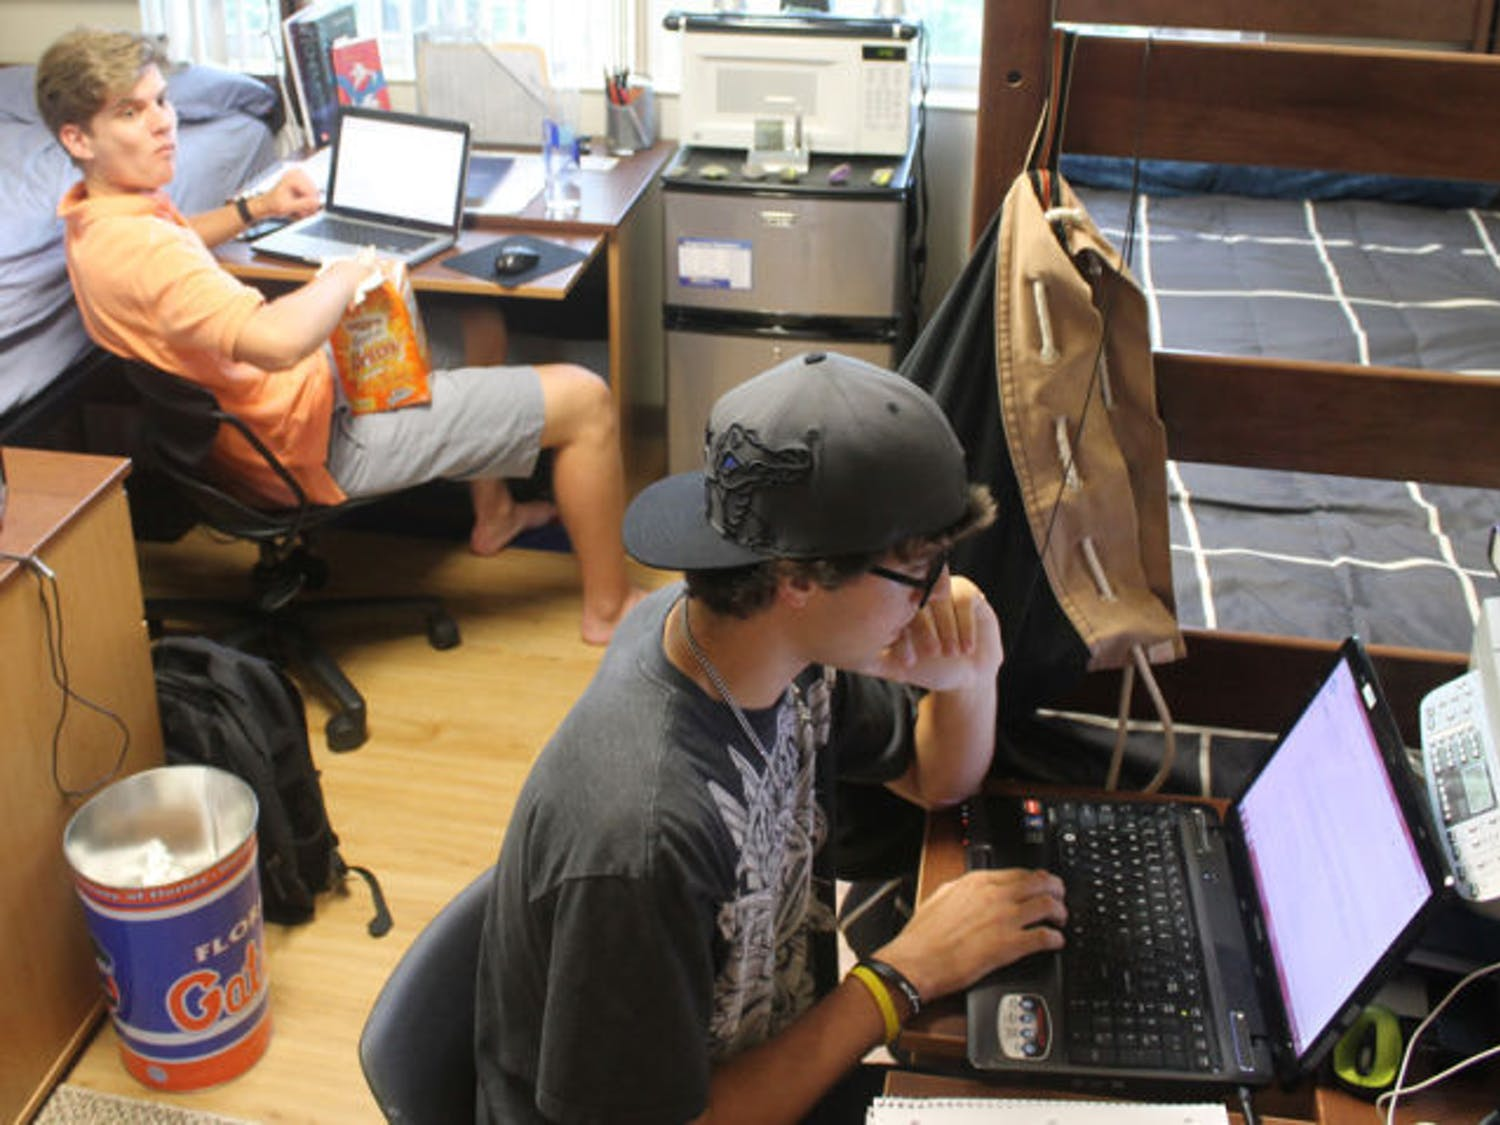 Animal science sophomore Justin Hanson, 19, right, and engineering freshman William Walker, 18, left, pass time in their dorm room Monday afternoon in Simpson Hall.